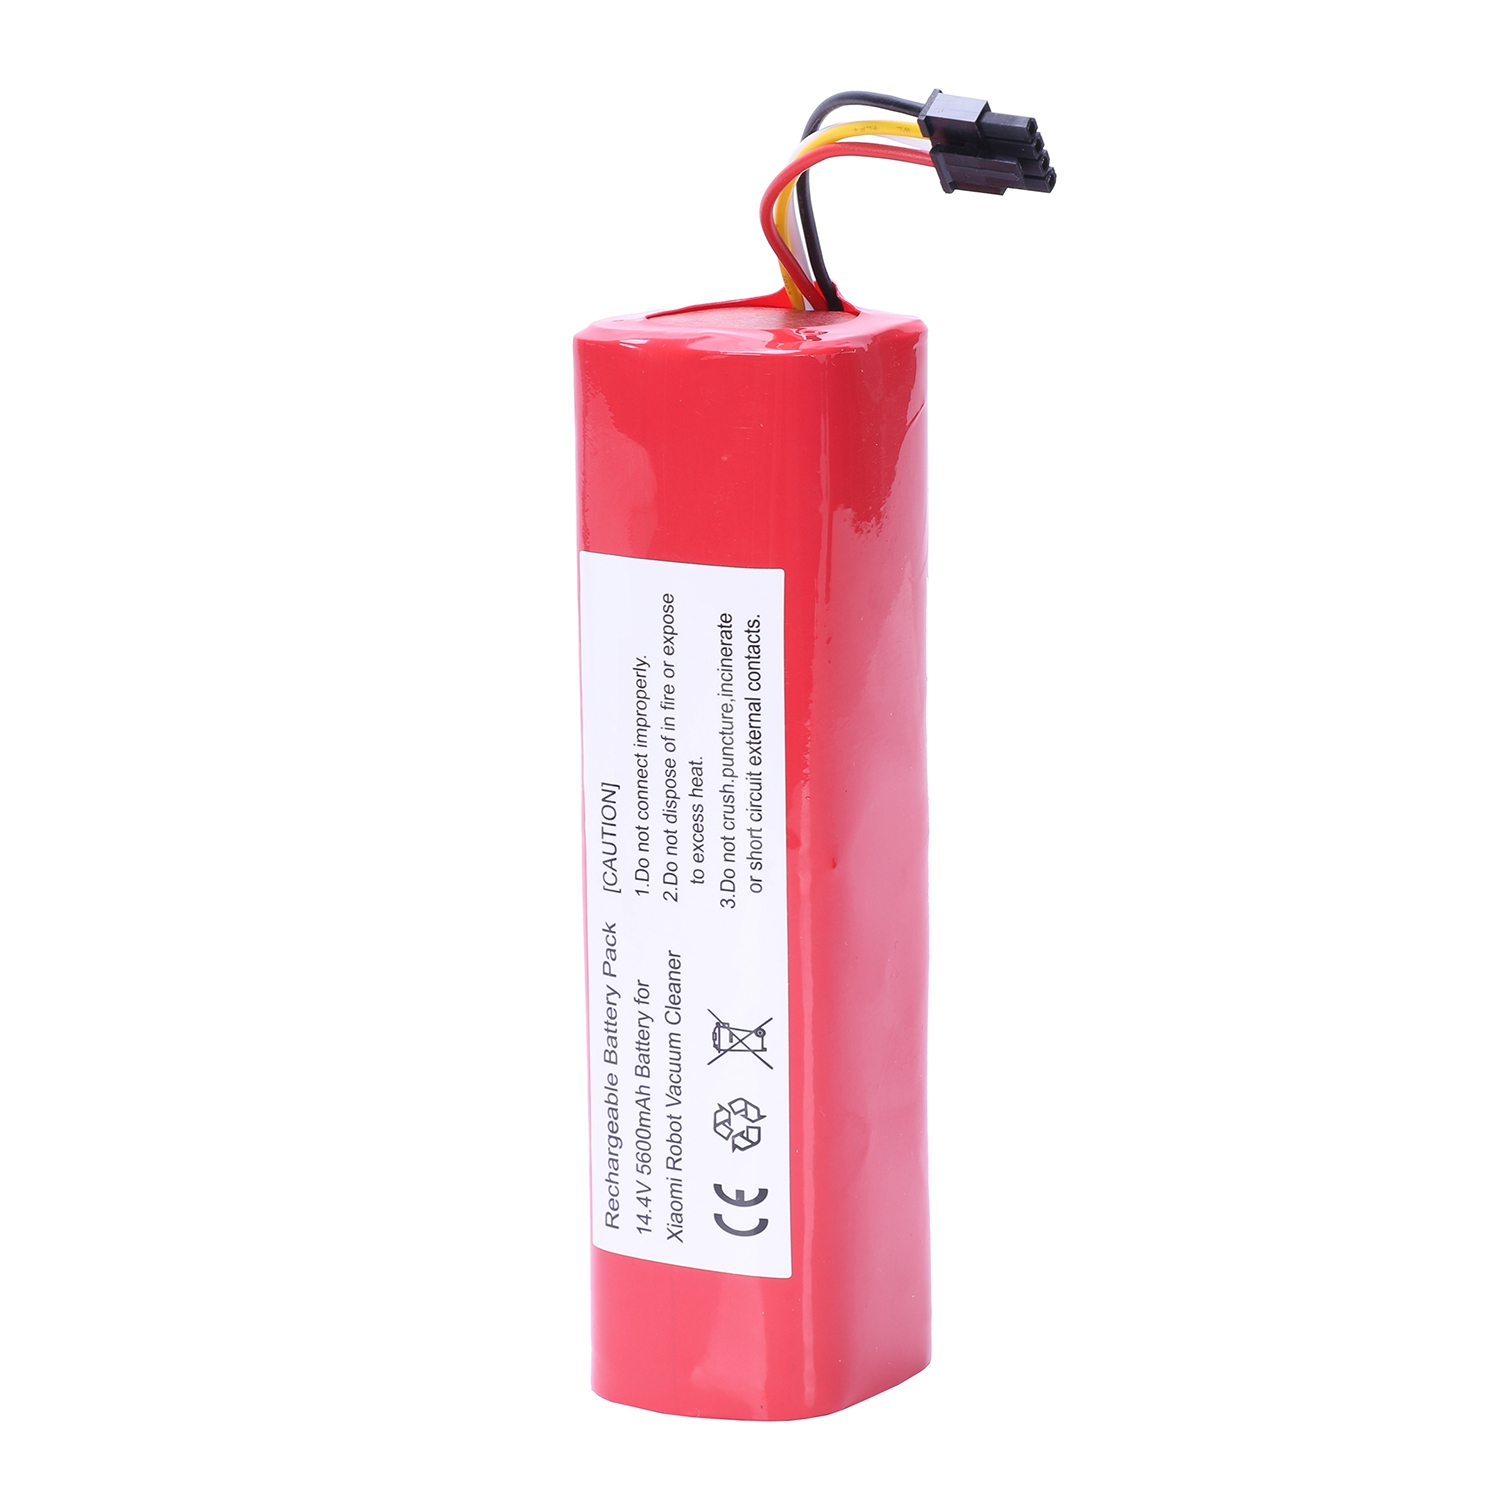 Rechargeable 5200Mah Battery For Xiaomi Robot Vacuum Cleaner Li-Ion Lithium Accessories PartsRechargeable 5200Mah Battery For Xiaomi Robot Vacuum Cleaner Li-Ion Lithium Accessories Parts